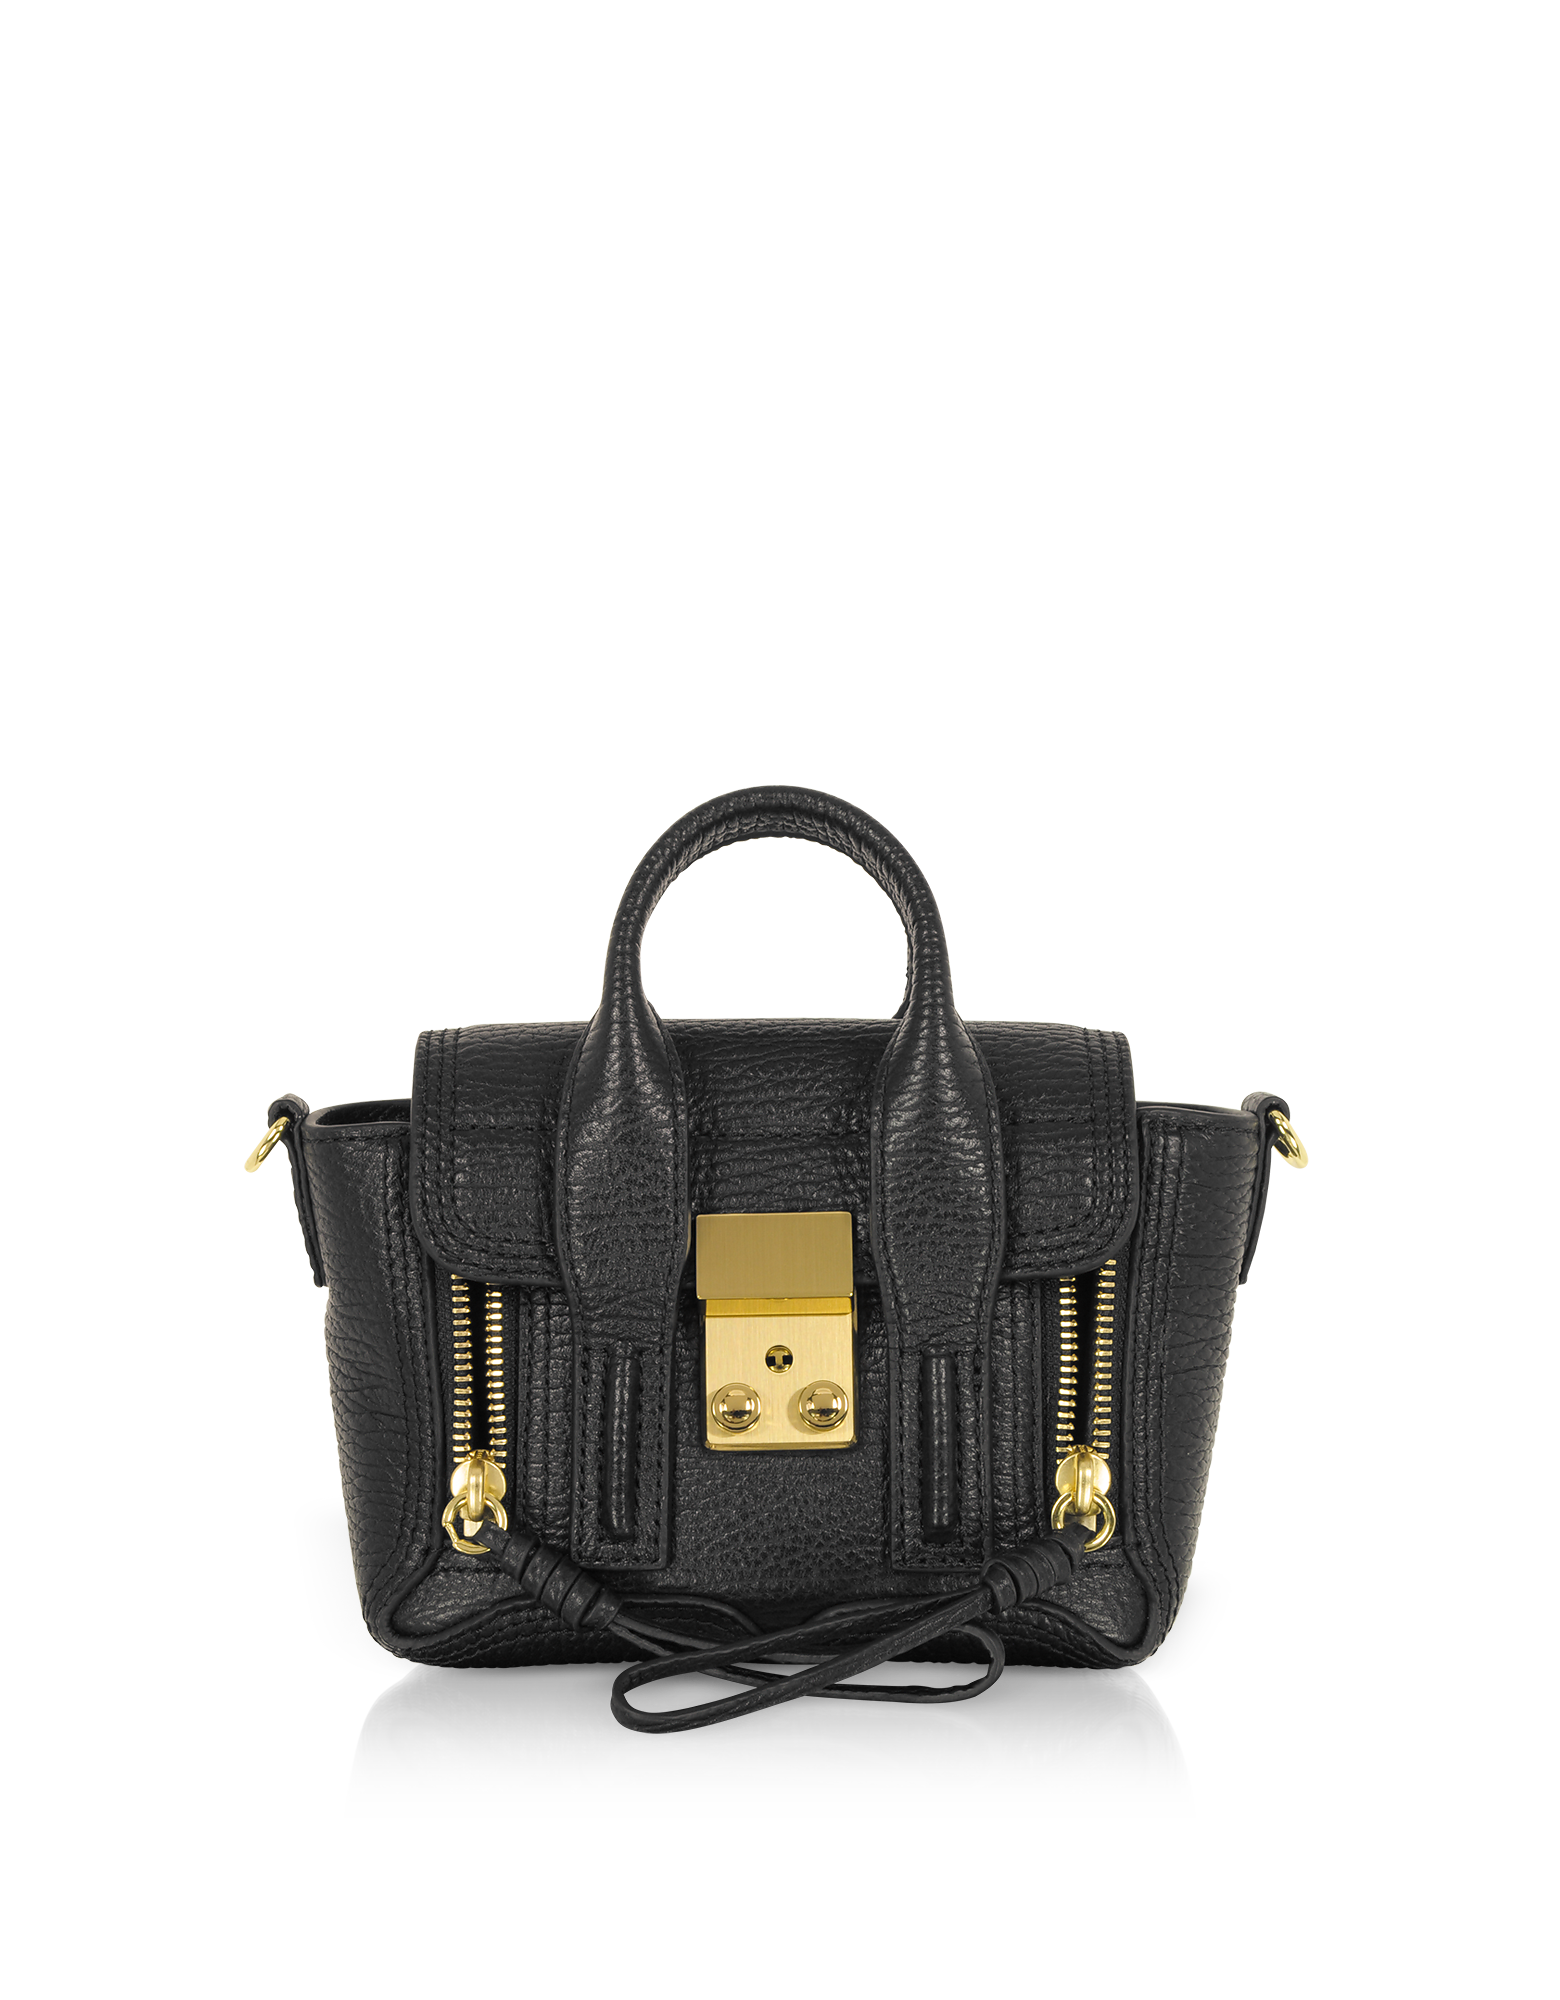 Image of Black Leather Pashli Nano Satchel Bag